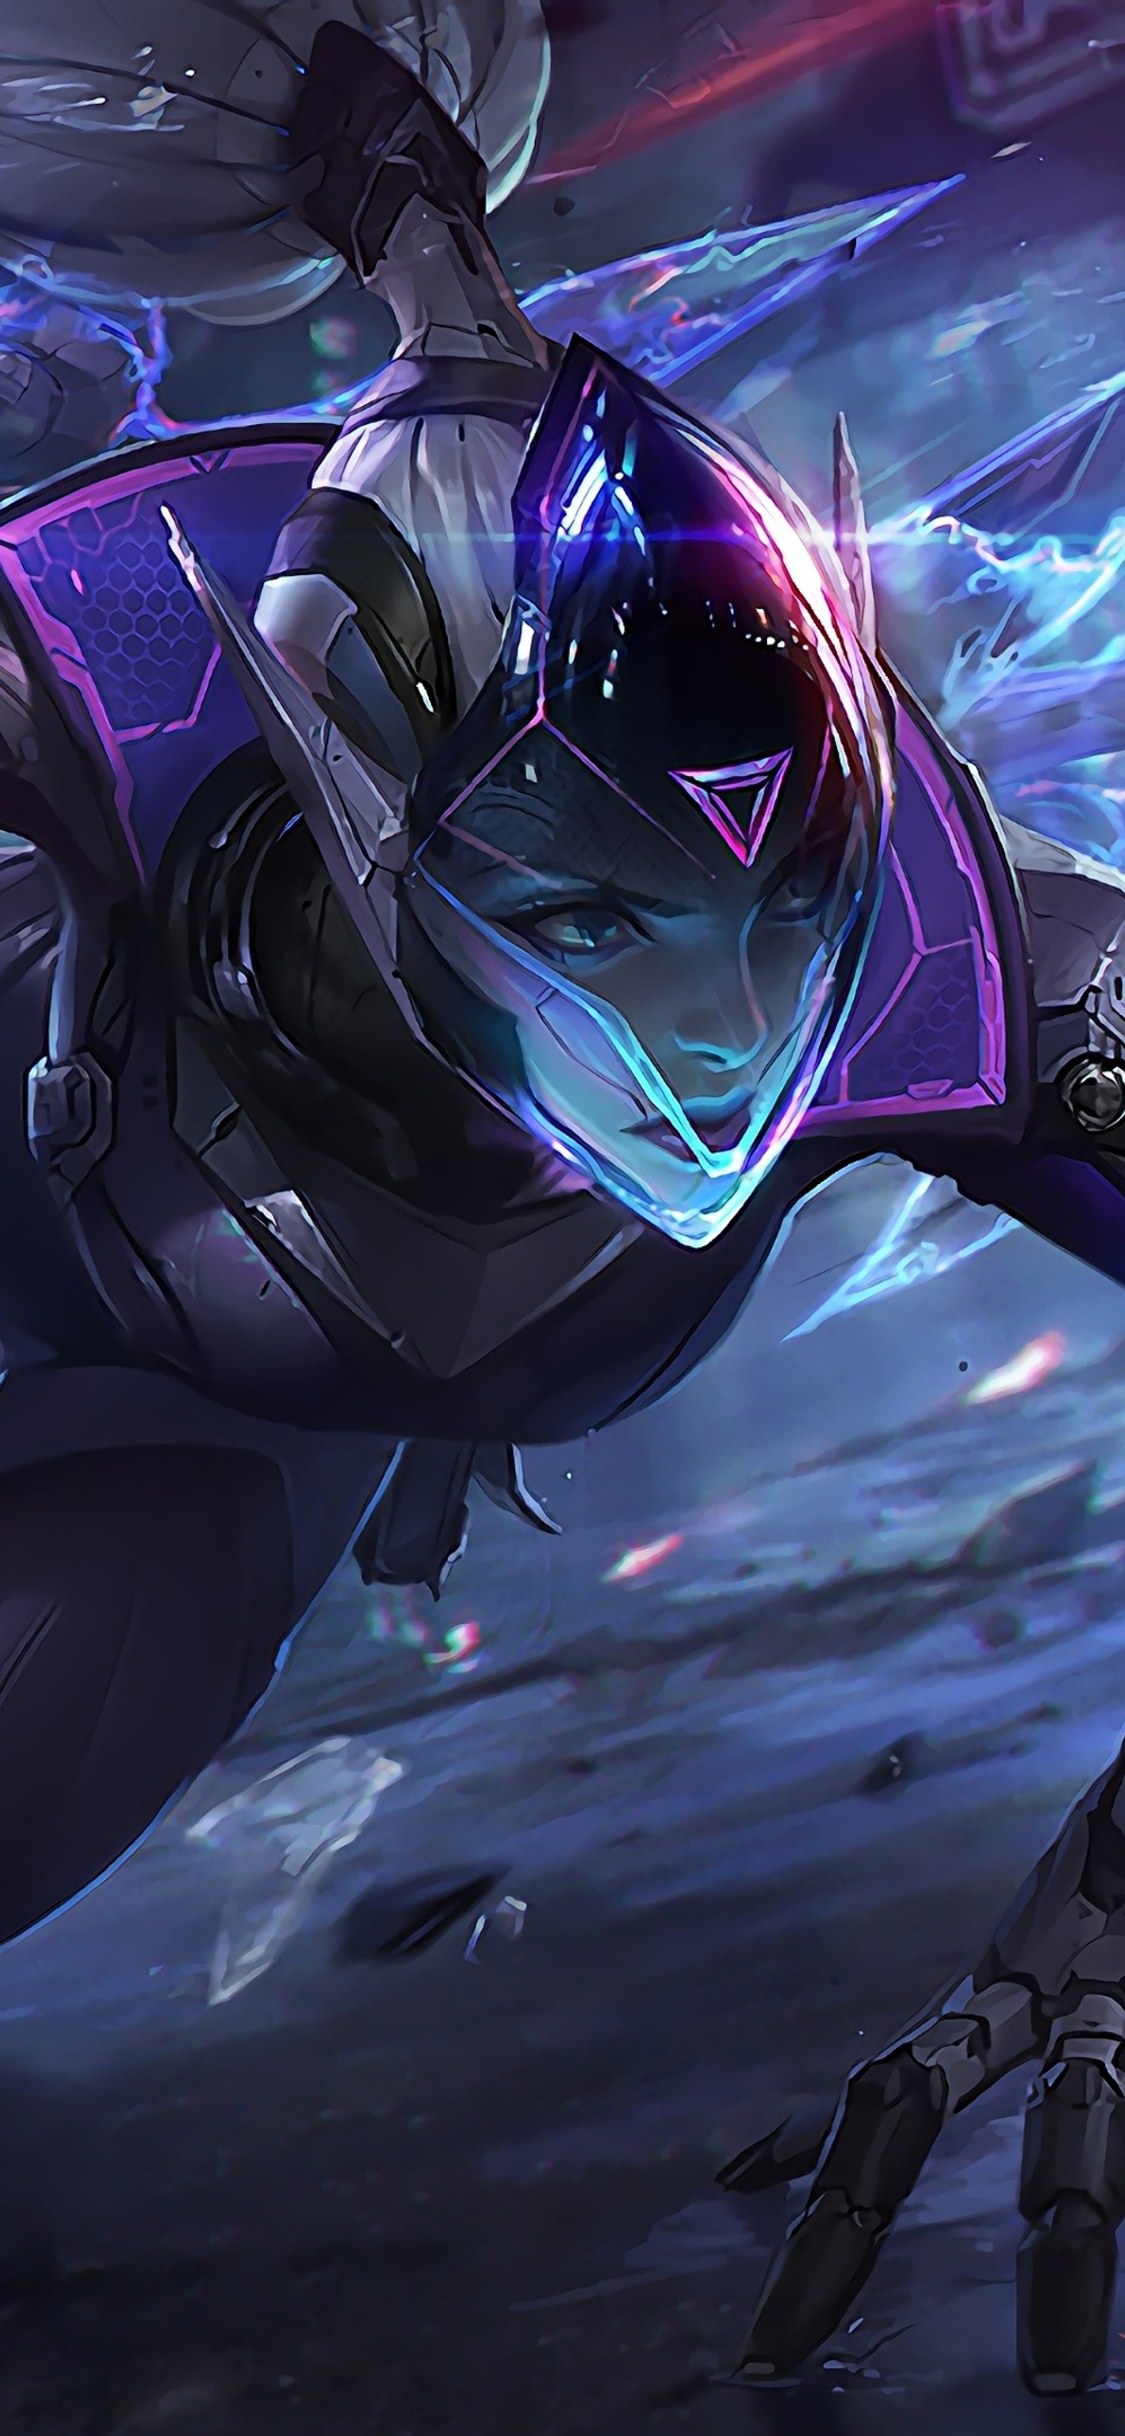 1125x2436 Vayne League Of Legends 4k Iphone Xs Iphone 10 Iphone X Hd